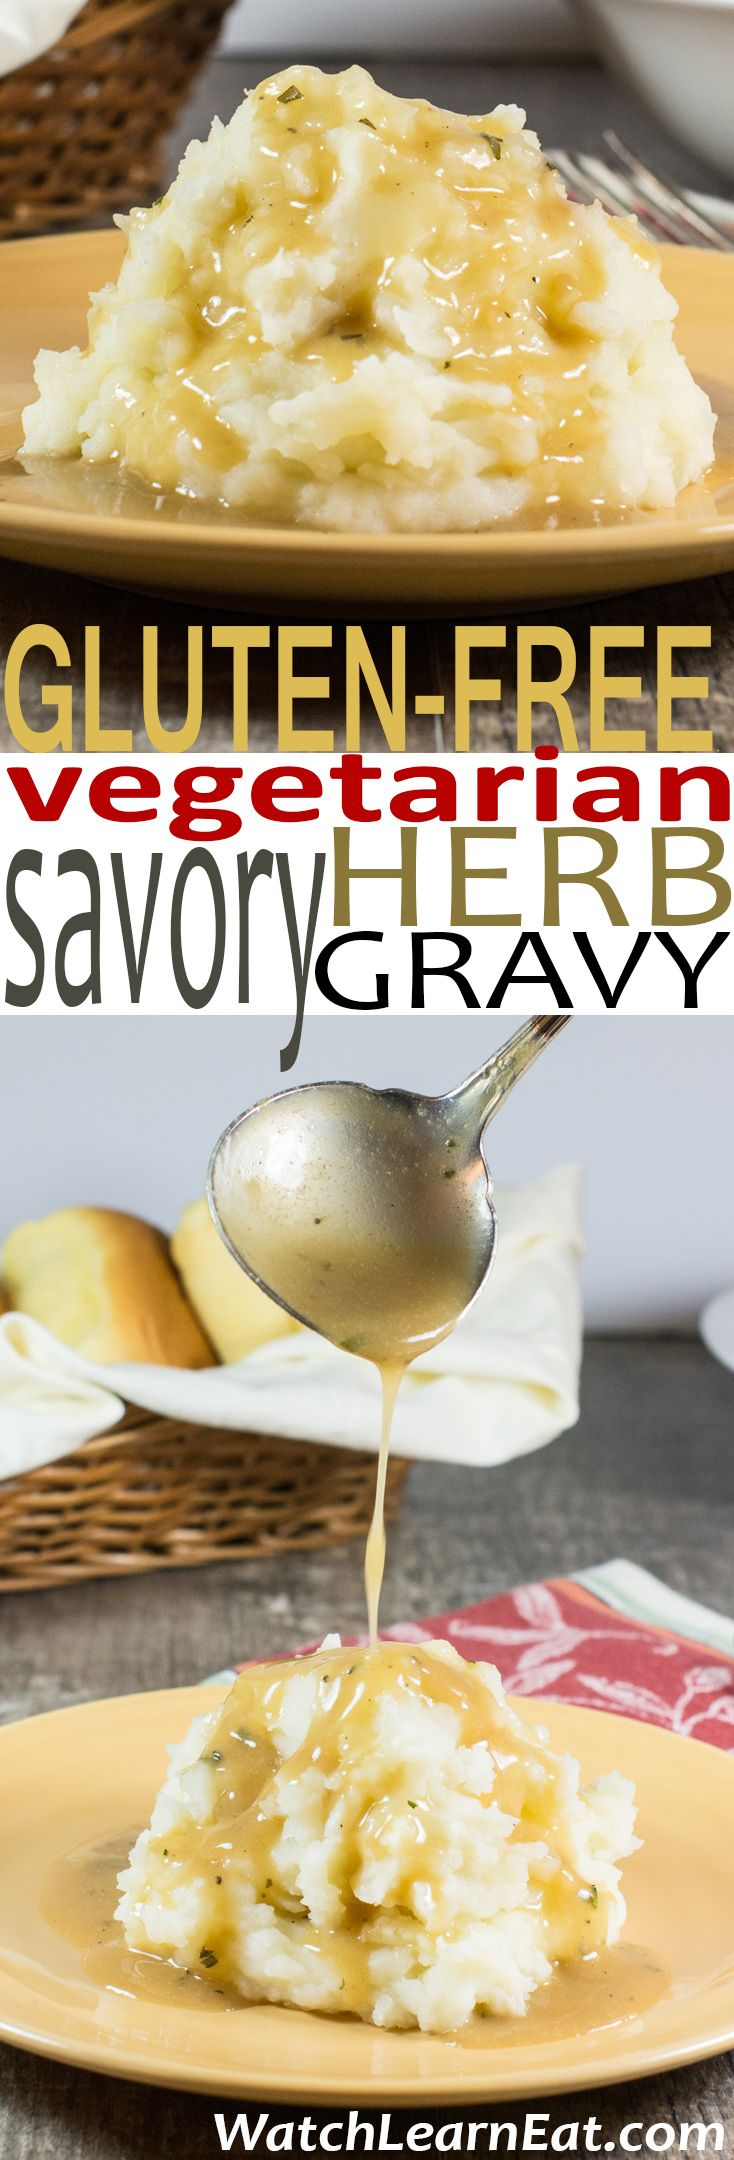 This Gluten-Free Vegetarian Savory Herb Gravy features the flavors of fresh rosemary, sage and thyme for a delicious accompaniment to your favorite meal.